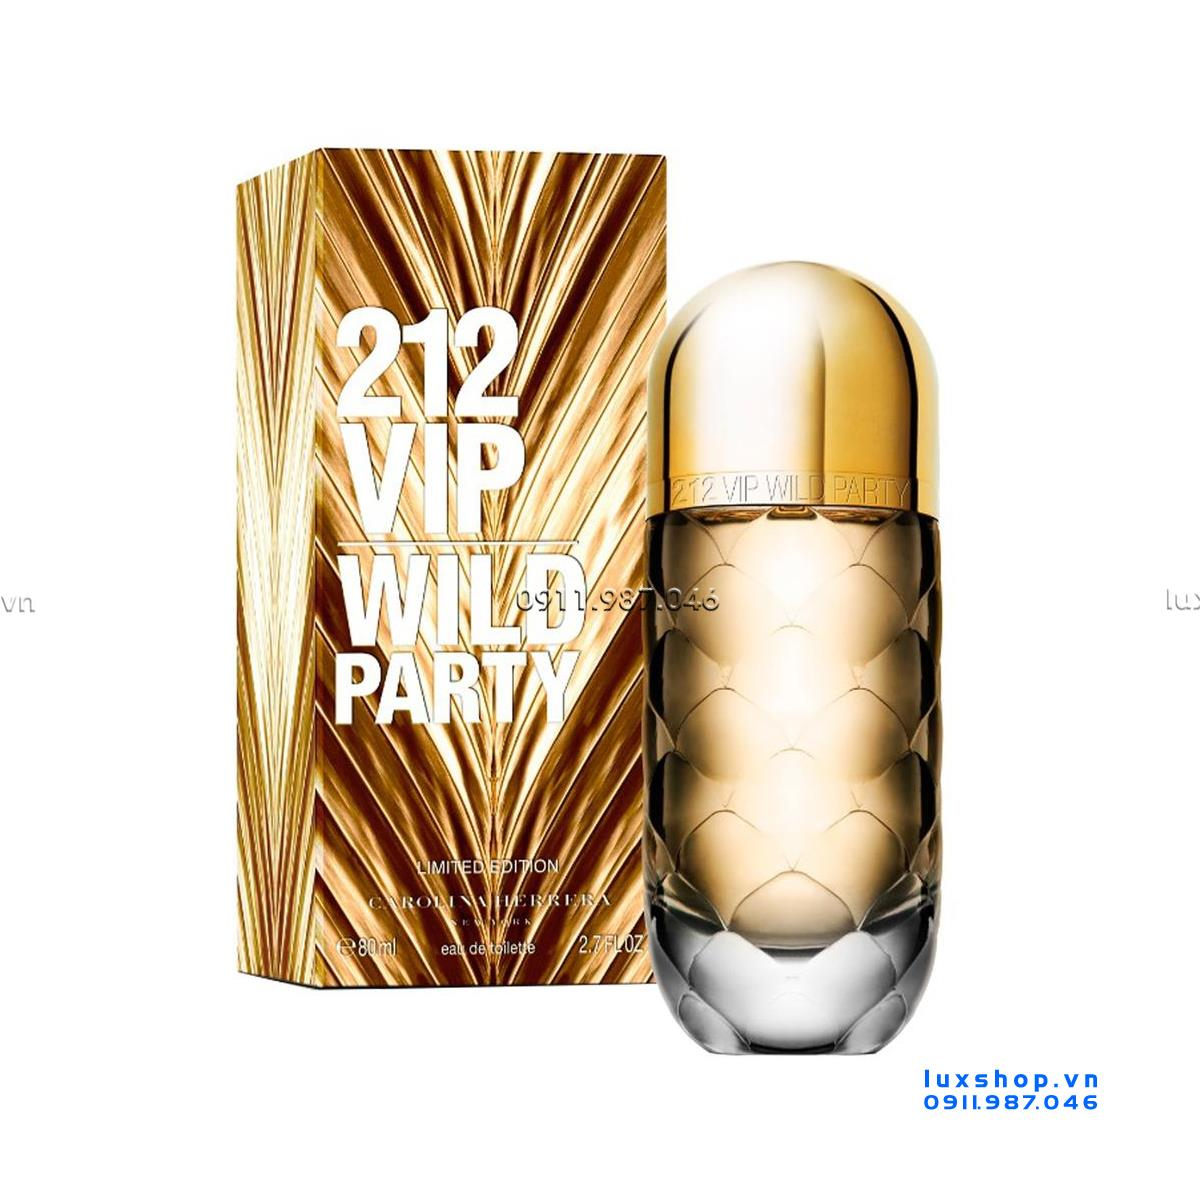 nuoc-hoa-nu-carolina-herrera-212-vip-wild-party-limited-edition-chinh-hang-my-pn102031